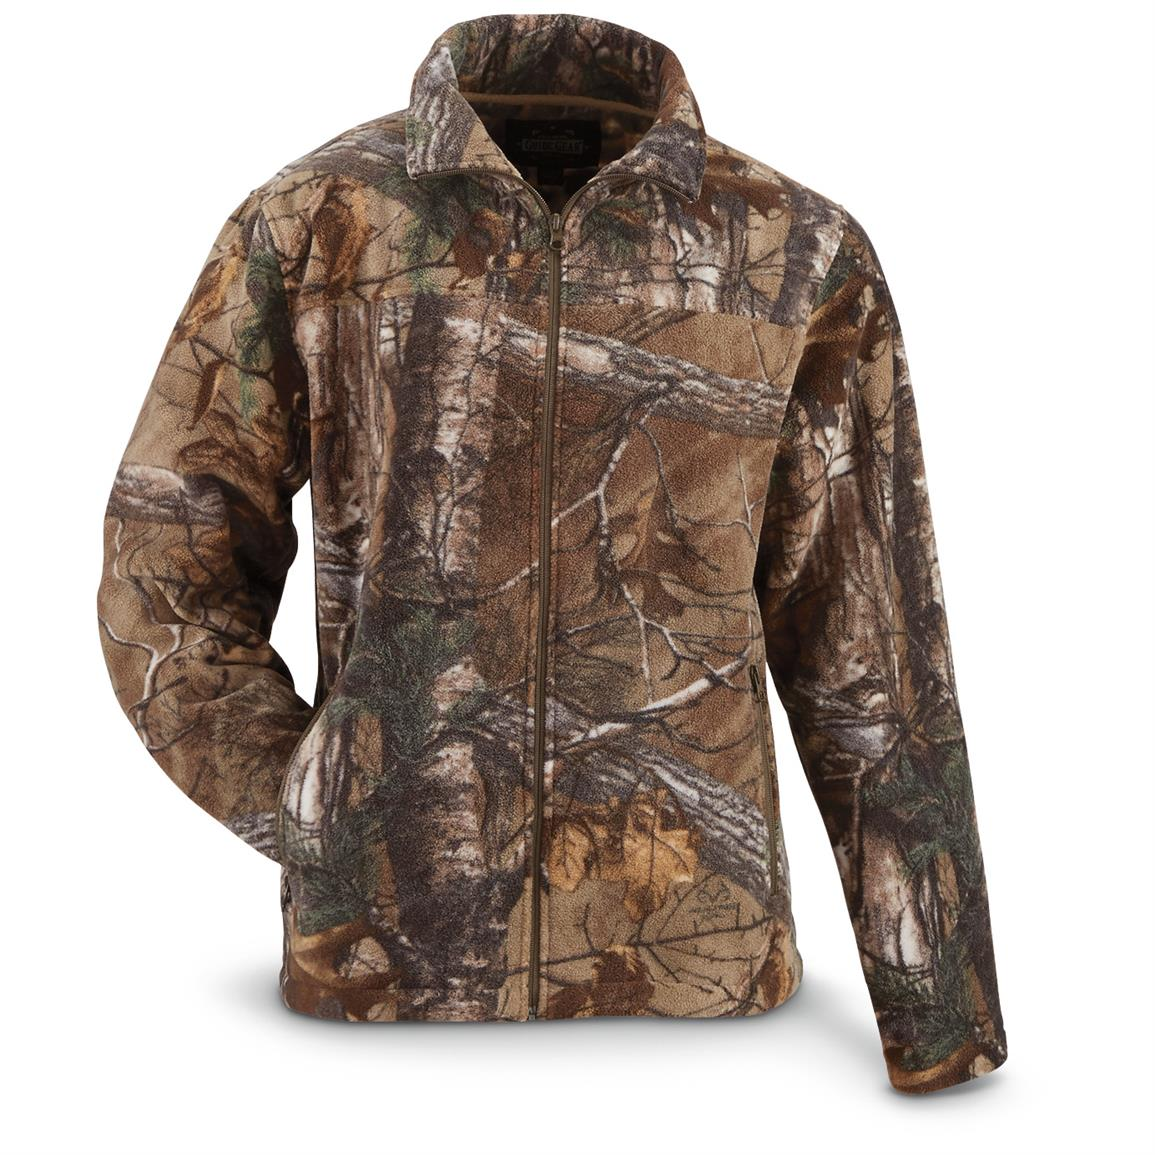 Guide Gear Men's Fleece Full Zip Jacket, Realtree Xtra